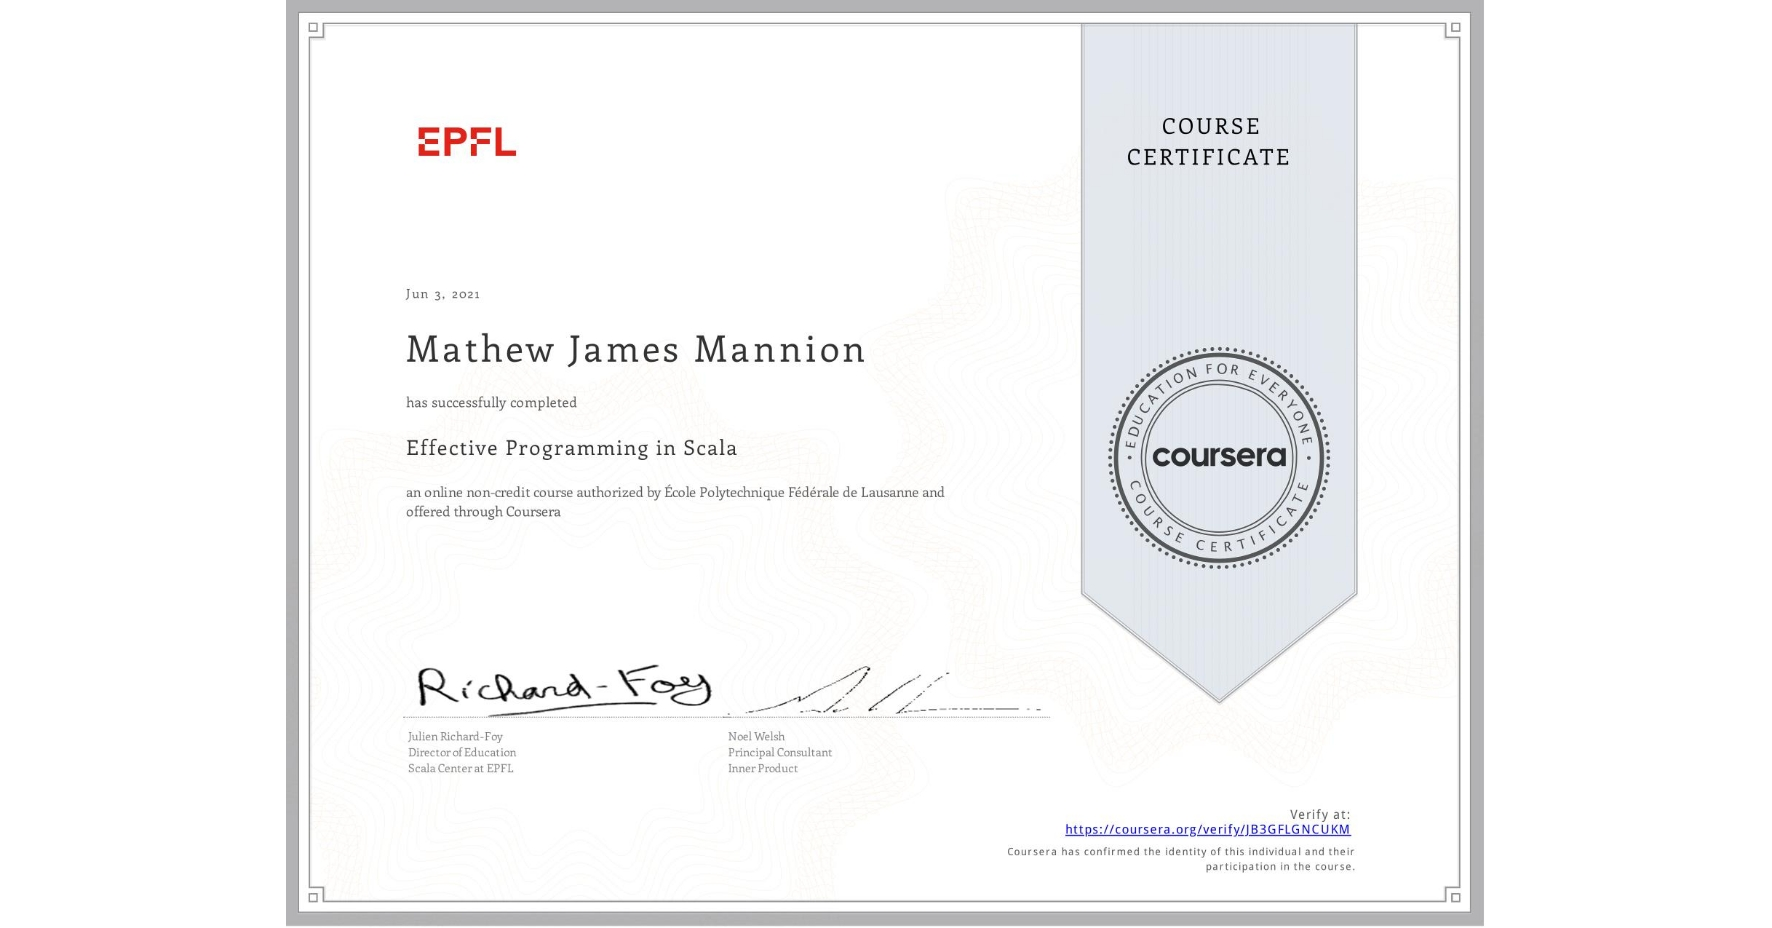 View certificate for Mathew James Mannion, Effective Programming in Scala, an online non-credit course authorized by École Polytechnique Fédérale de Lausanne and offered through Coursera